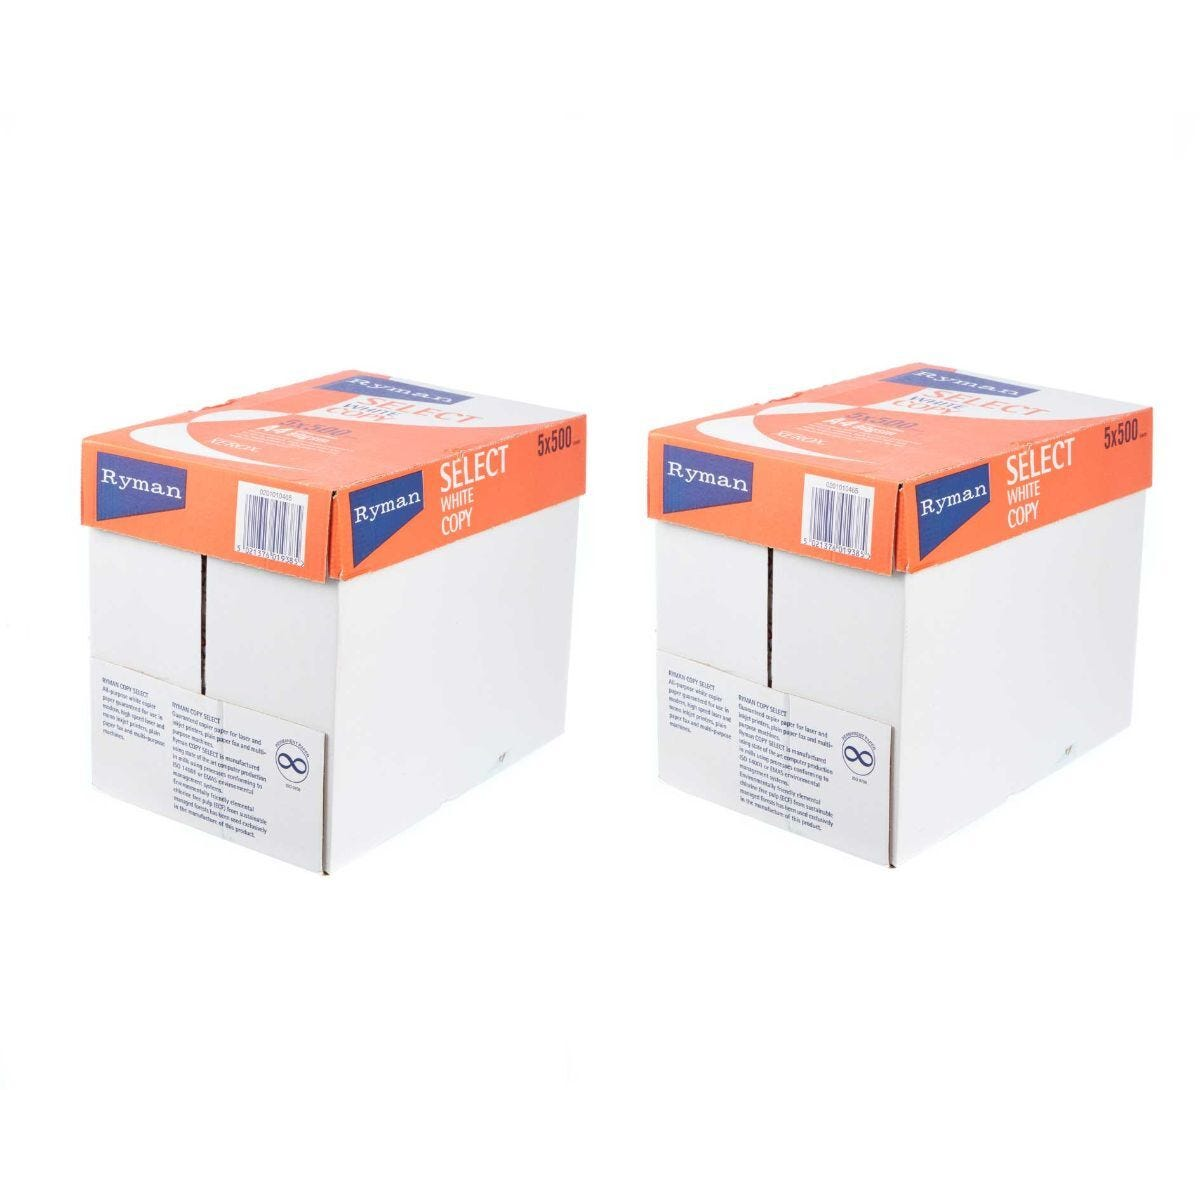 Ryman Select Copy Paper A4 80gsm 500 Sheets Pack of 10